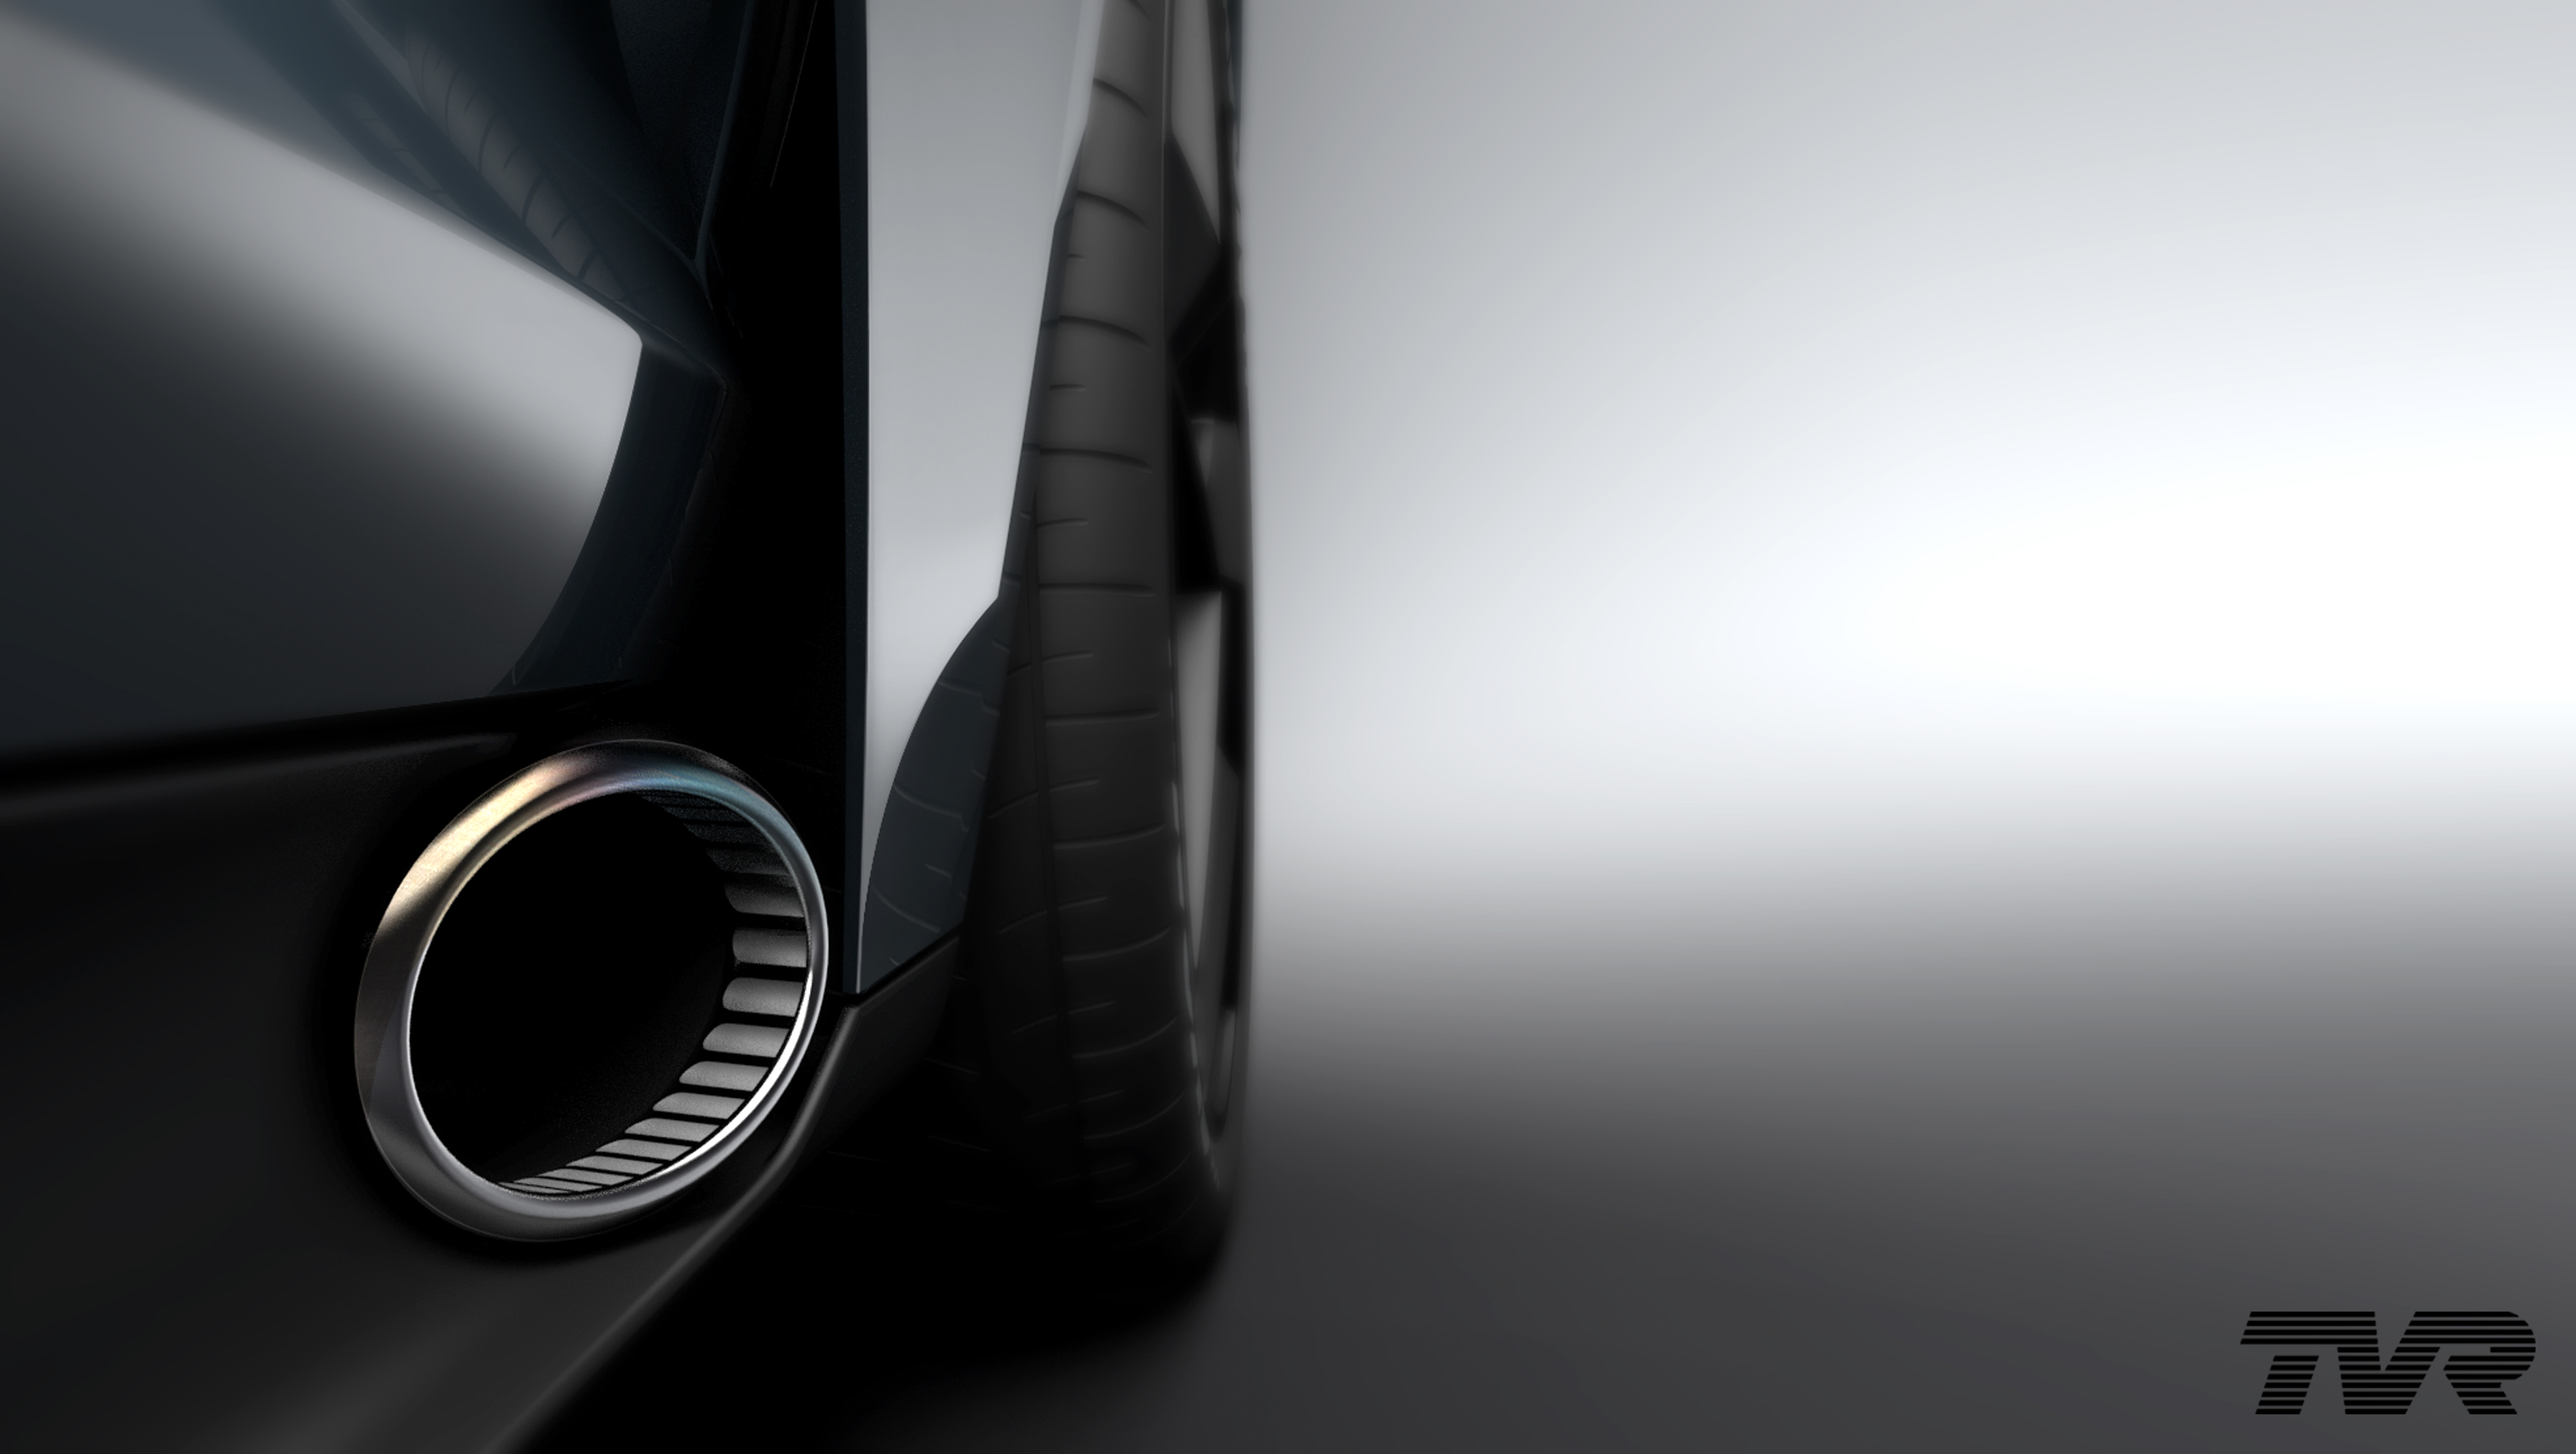 tvr sports car teased with side exit exhaust debuts at. Black Bedroom Furniture Sets. Home Design Ideas